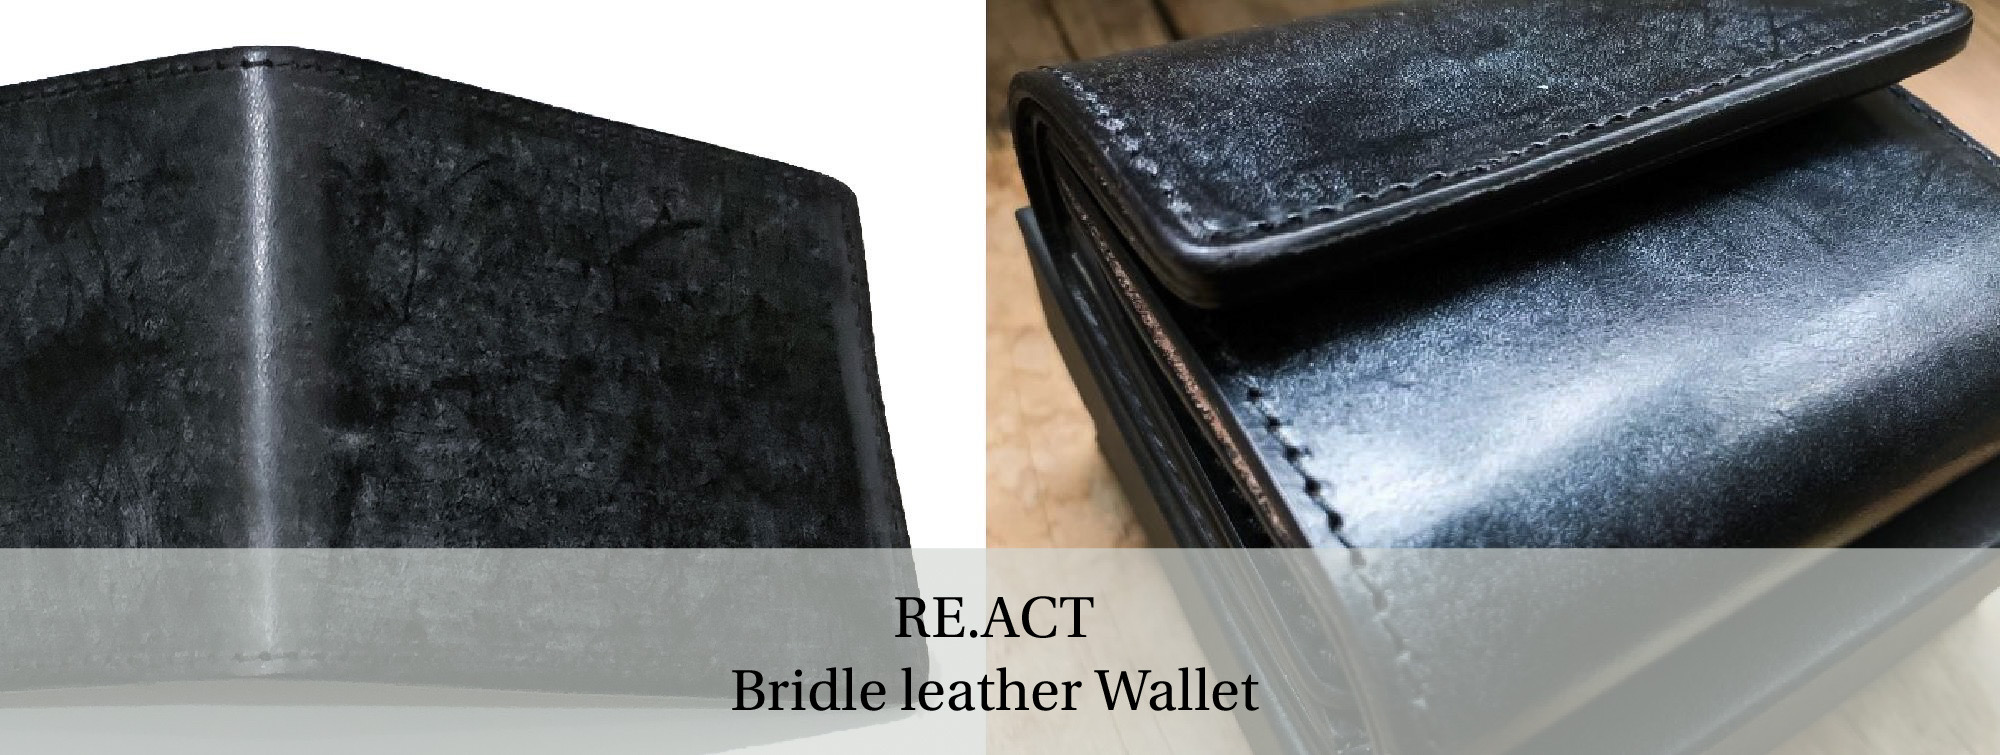 RE.ACT(リアクト) Bridle leather Billfold Wallet